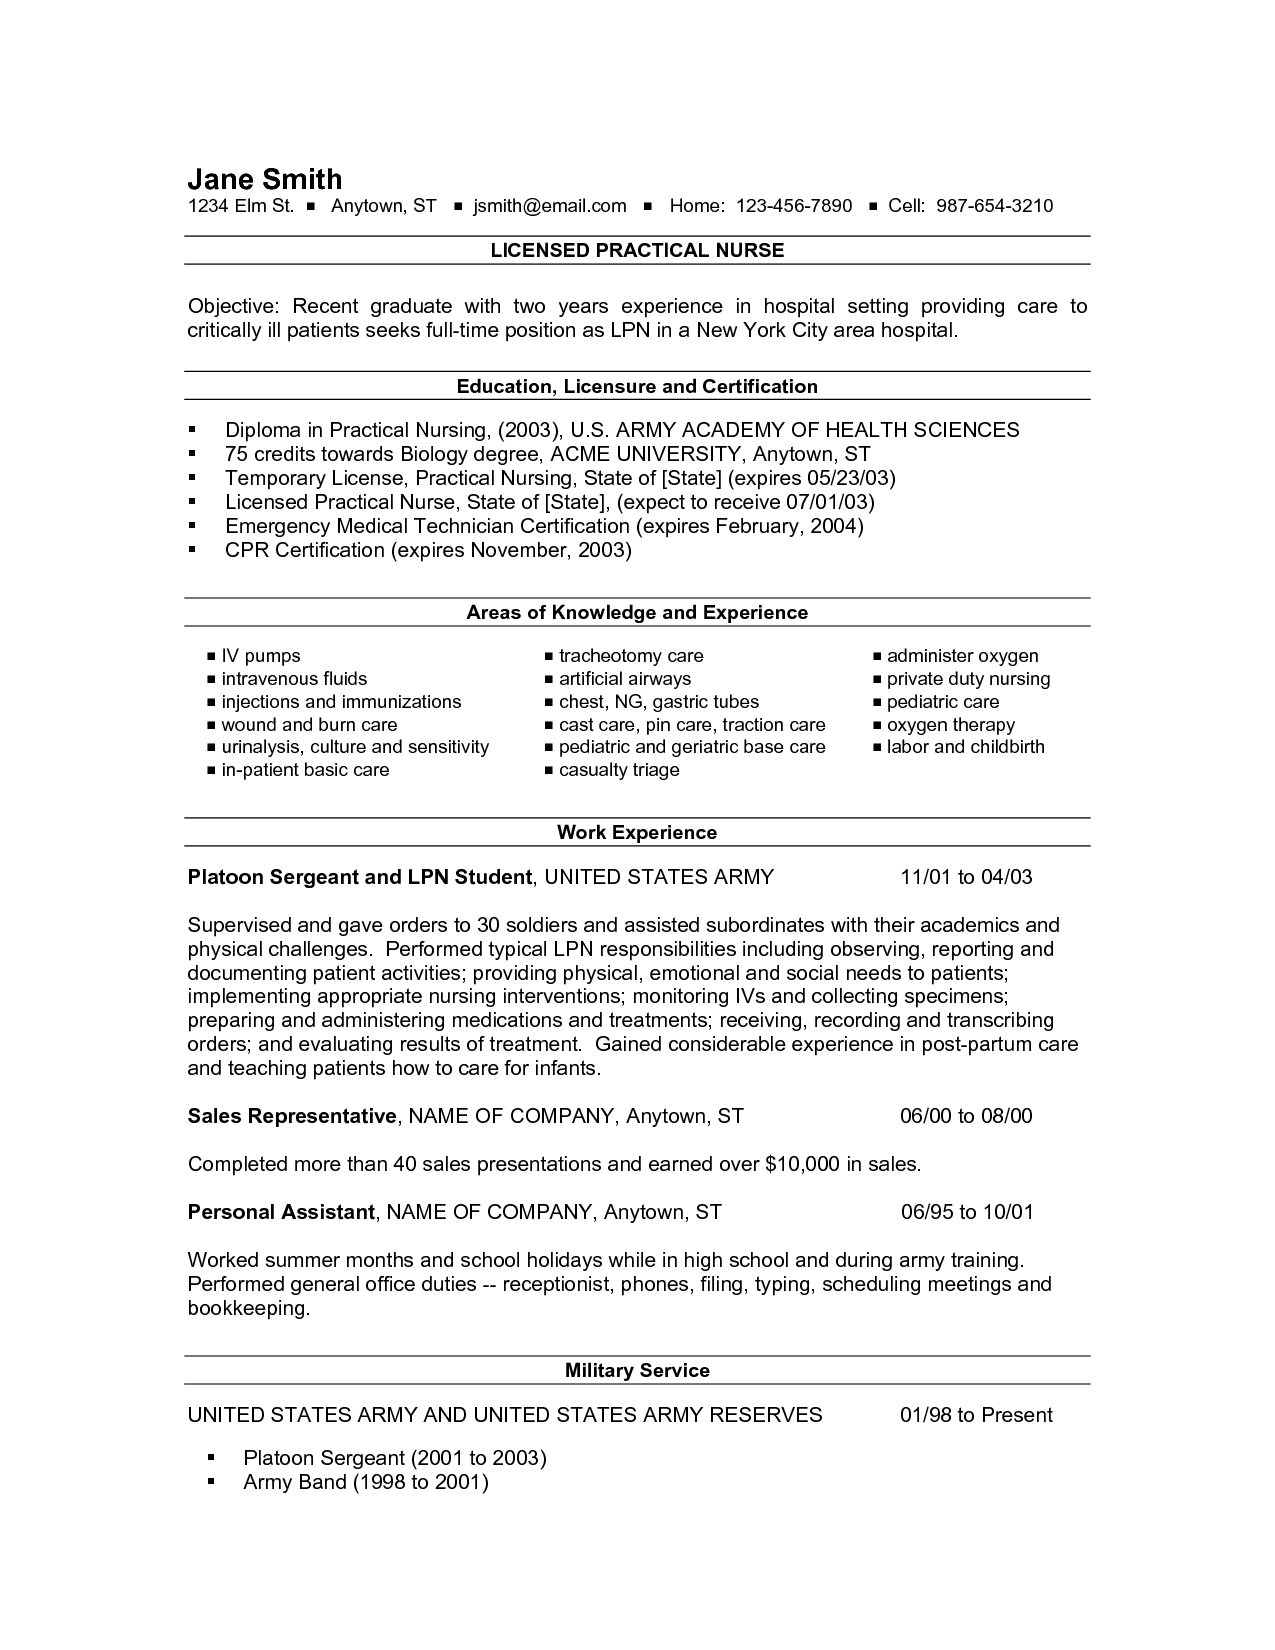 Home Health Care Nurse Resume Pleasing Hospital Nurse Resume Templates  Httpwww.resumecareer .